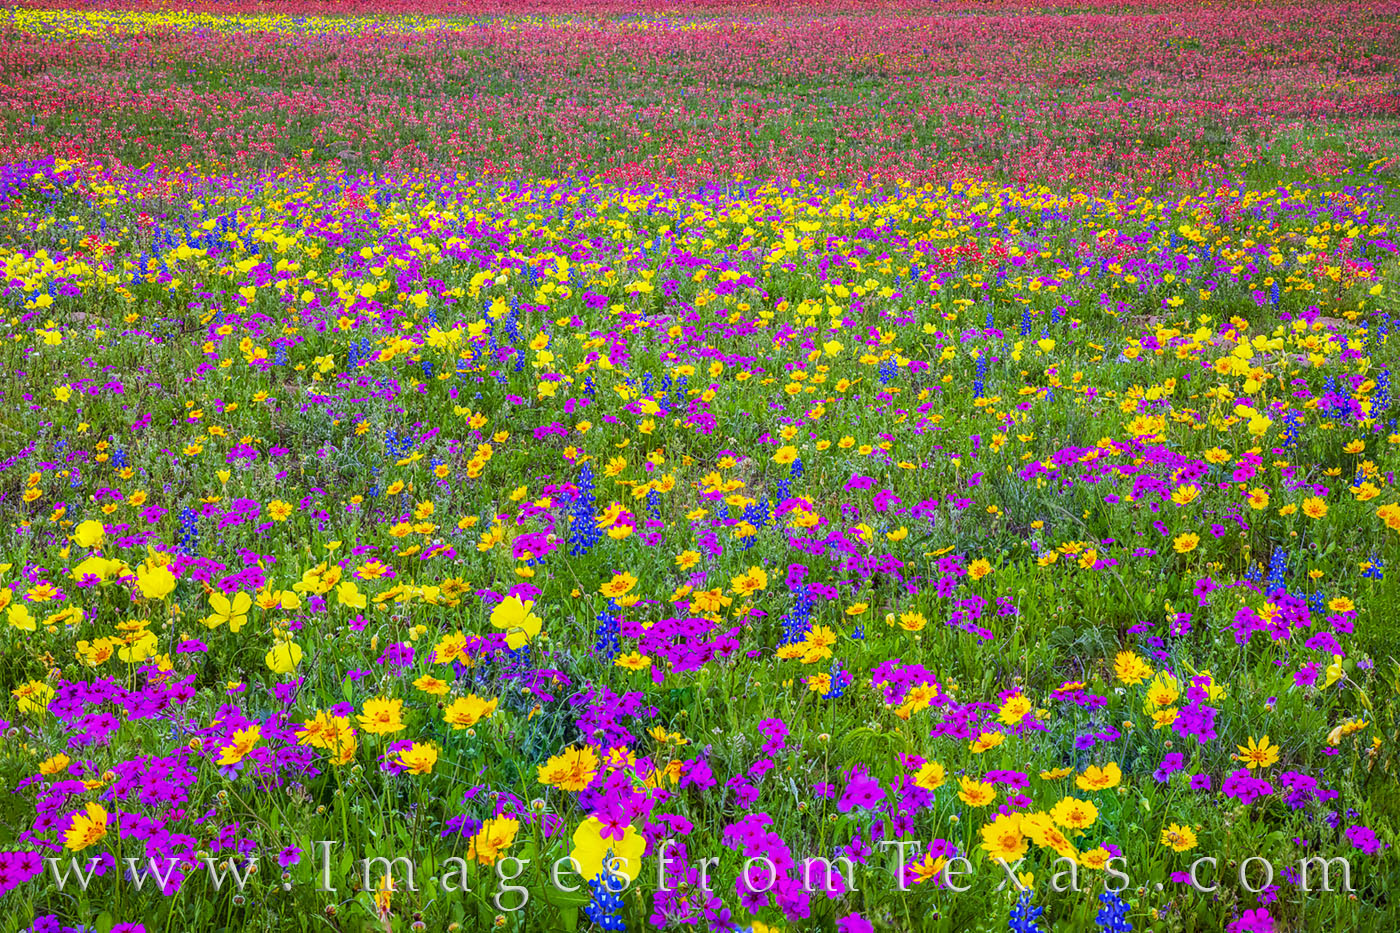 Wildflowers, color, evening, new berlin, Texas flowers, paintbrush, phlox, primrose, buttercups, bluebonnets, spring, red, purple, blue, yellow, gold, white, green, san Antonio, church road, photo